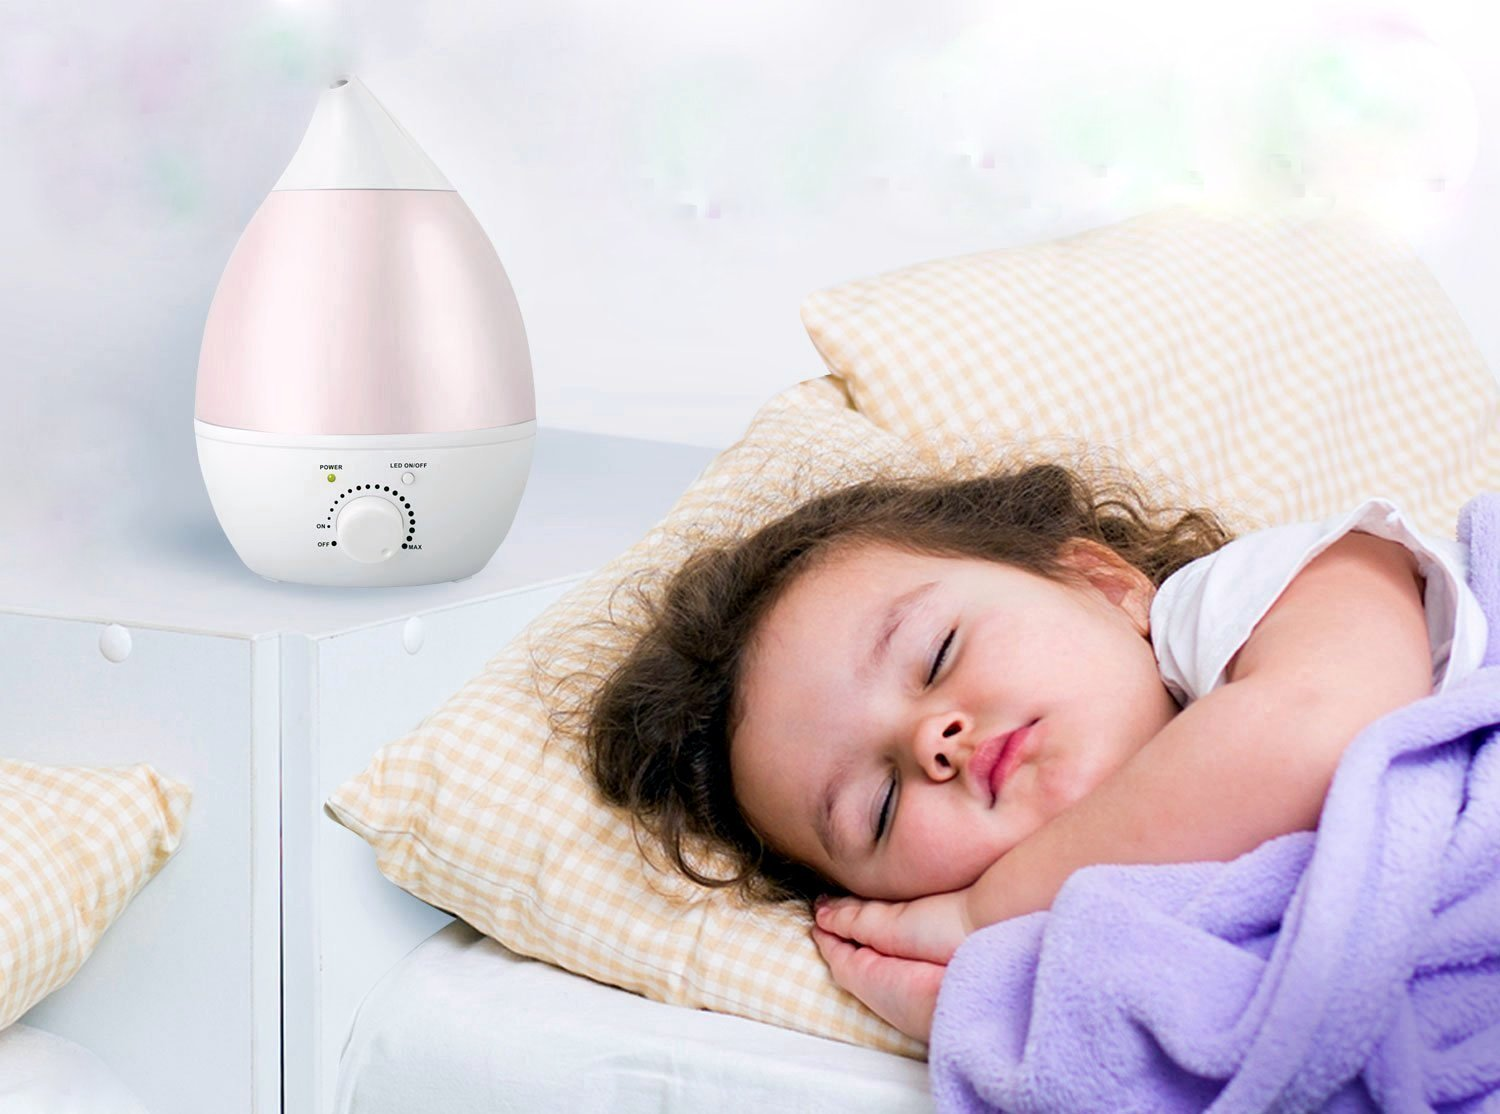 REMEDIES Ultrasonic Cool Mist Humidifier, Aroma Oil Diffuser, Premium Humidifying Unit, Whisper Quiet Operation, 2.8 Liters, 7 Color LED Night Light Function